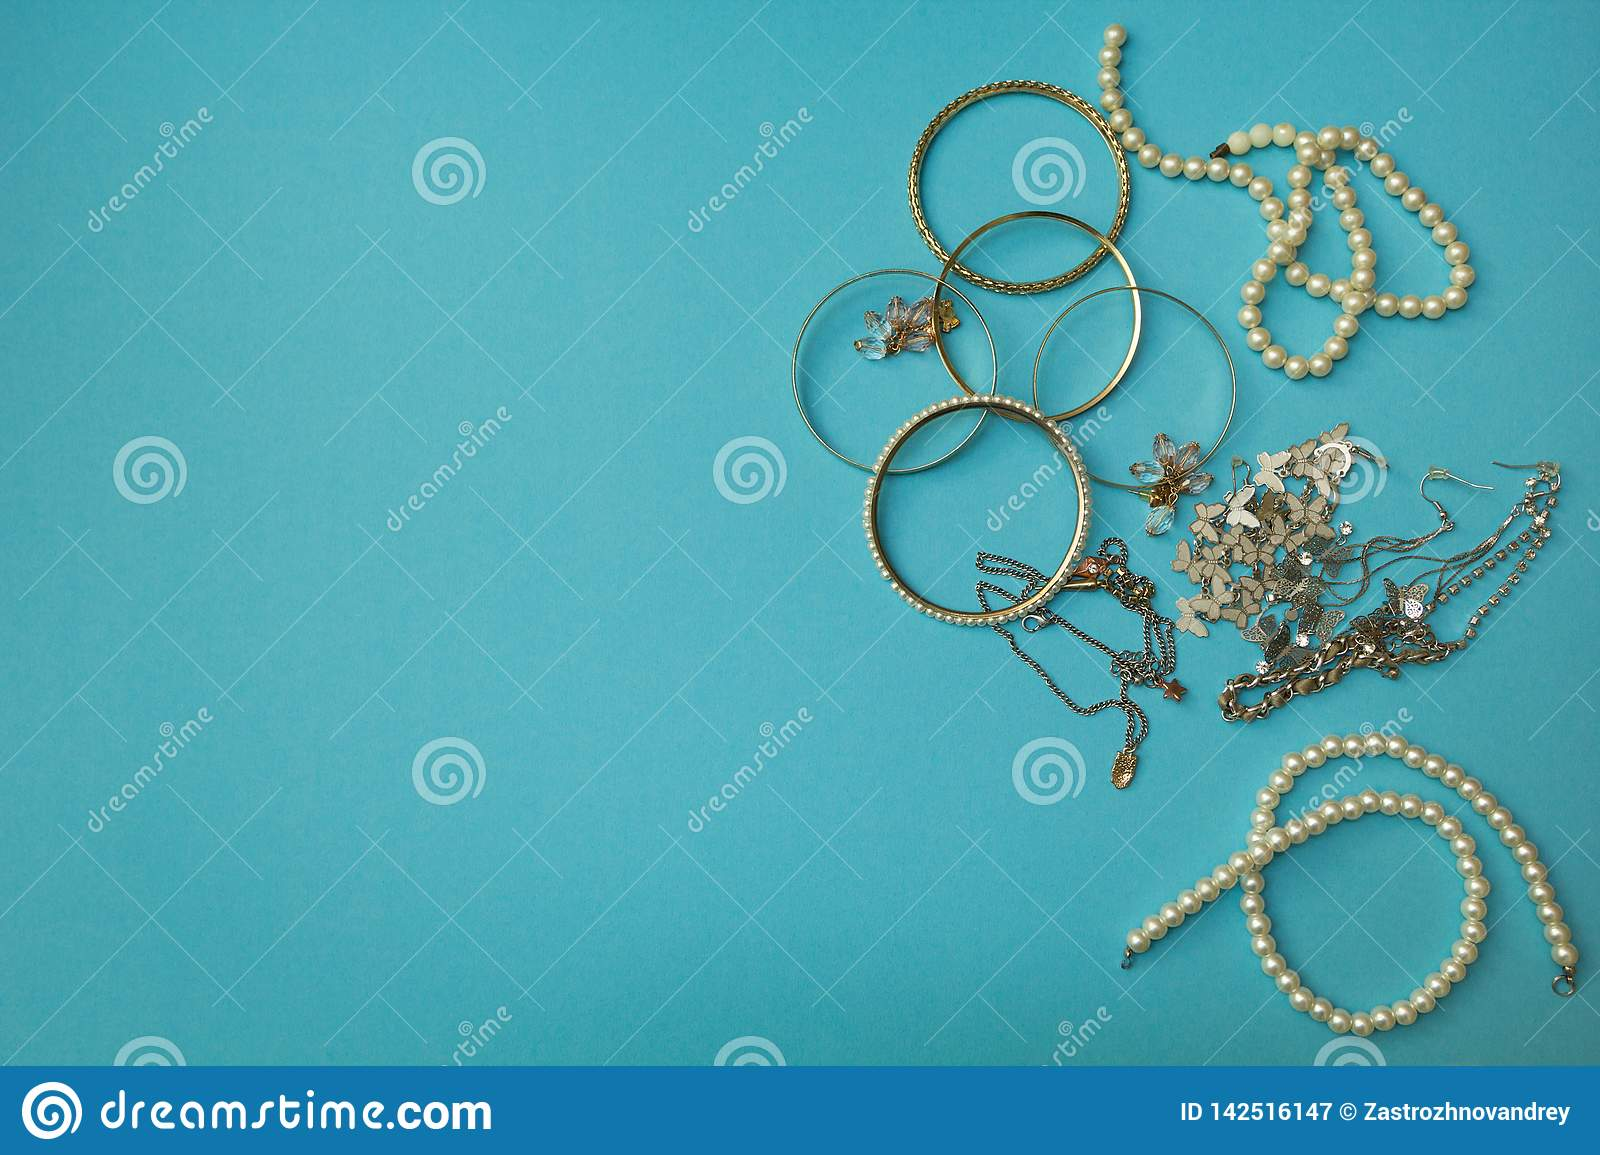 Women`s jewelry and other stuff on a blue background